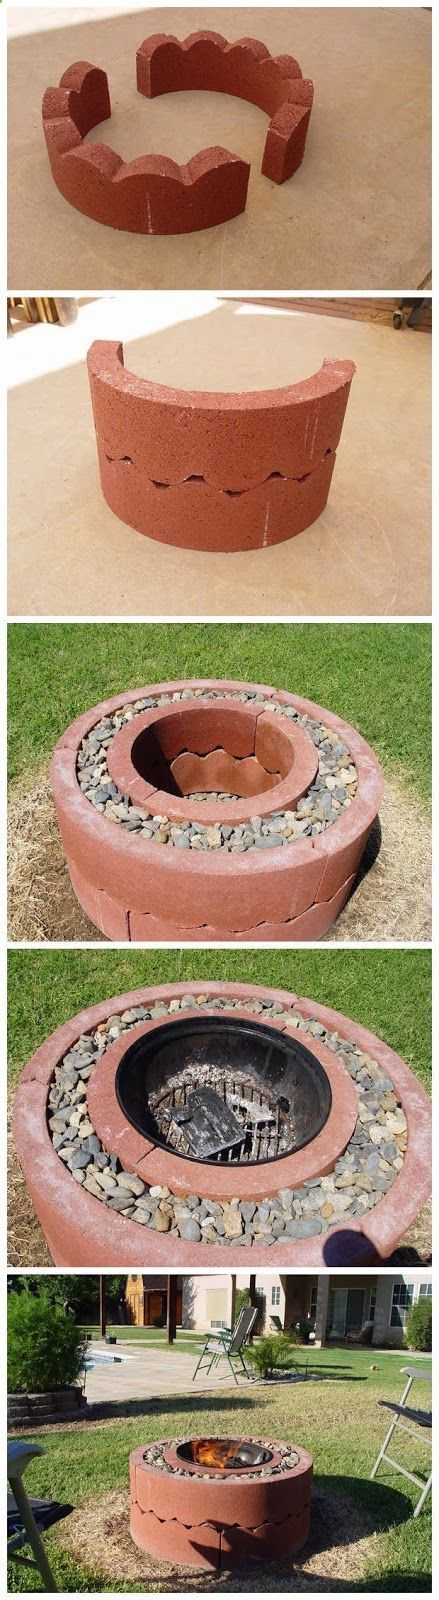 $50 fire pit using concrete tree rings. Ive always wanted a fire pit at my house! This one looks easy and stylish!